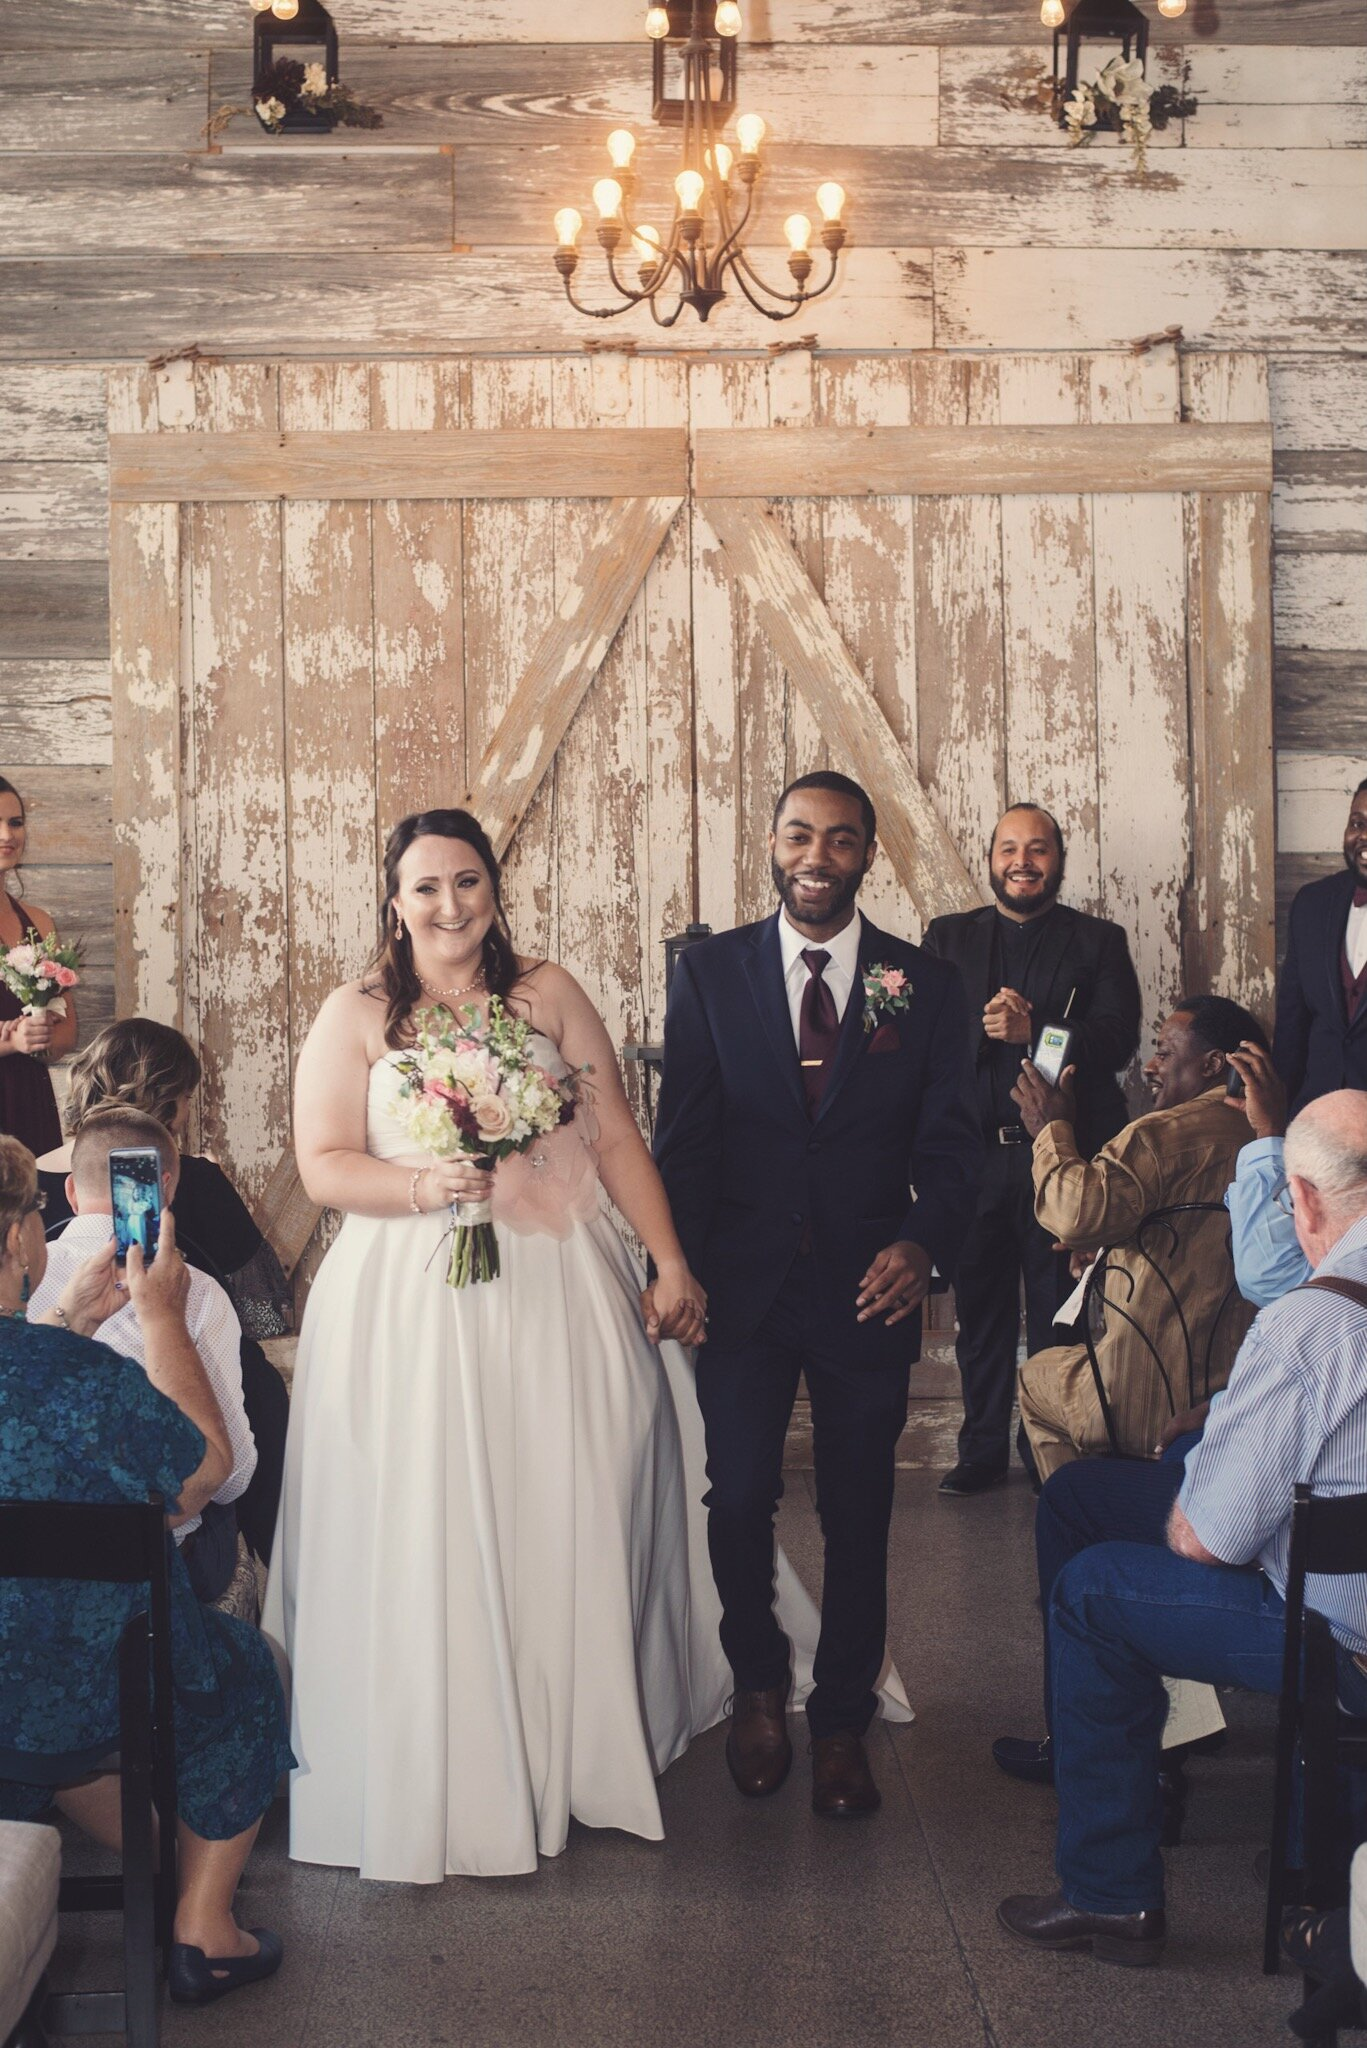 35 Wedding Songs For The Newlywed S Recessional Aka Exit Song Country Rock Classical Indie Modern And More Kansas City Small Wedding Venues The Vow Exchange Wedding Chapels In Missouri